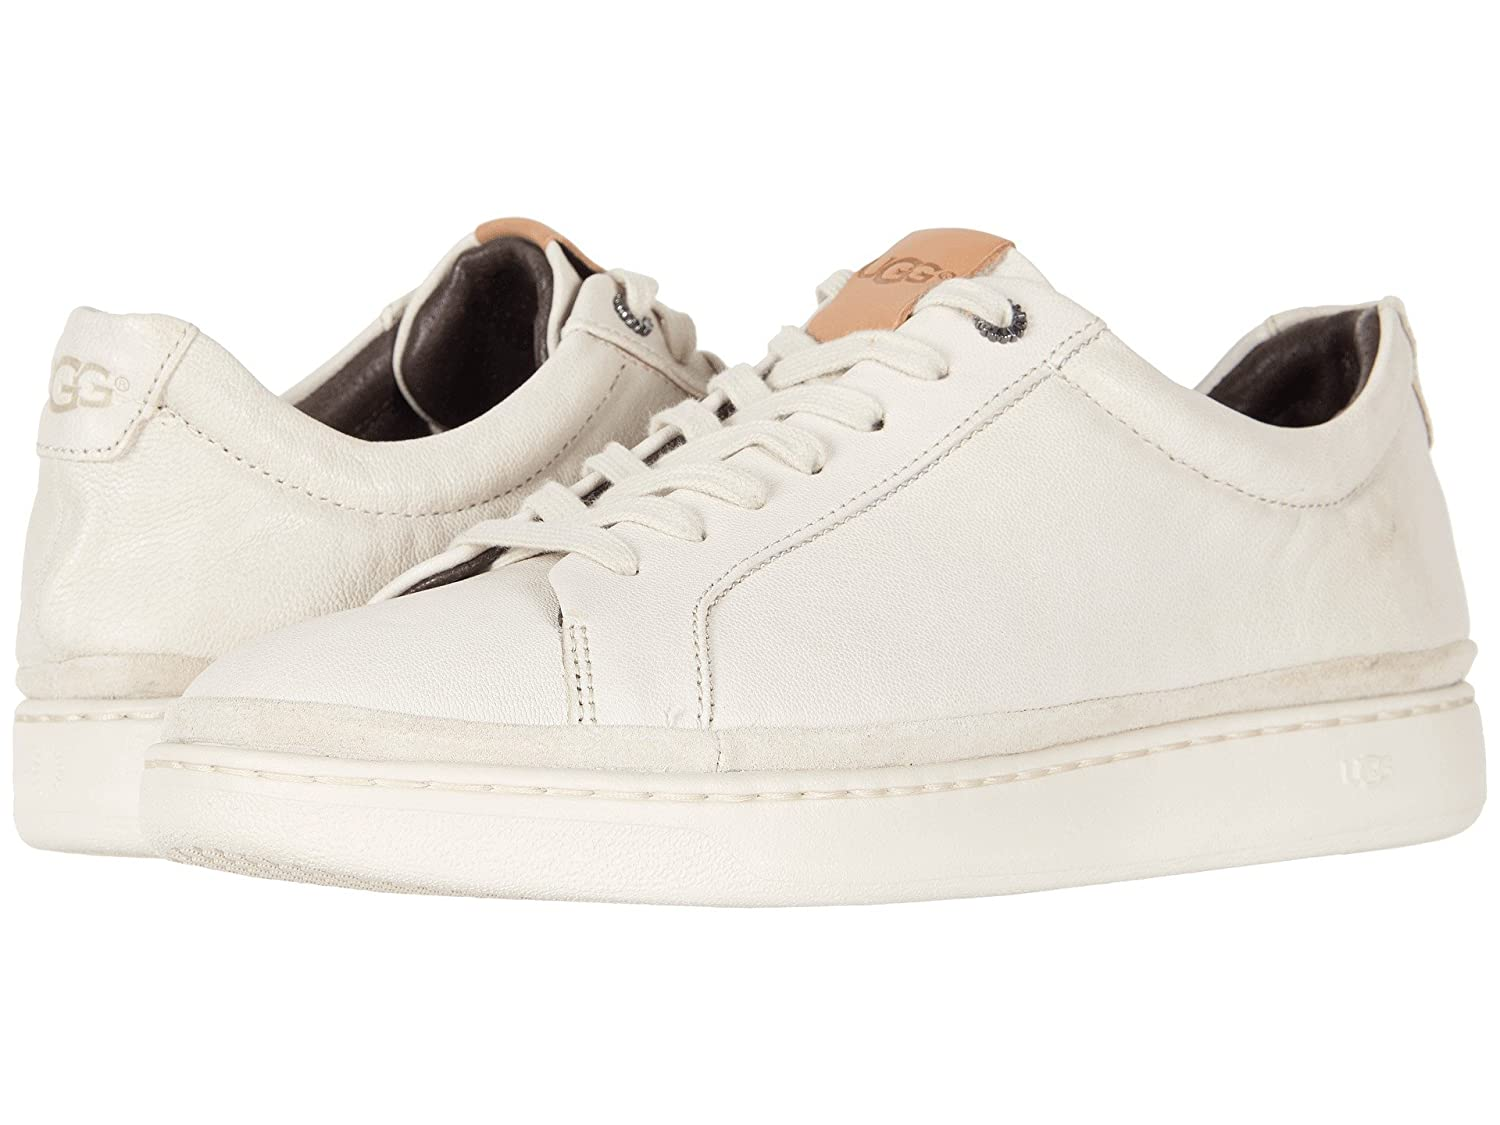 [UGG(アグ)] メンズレースアップシューズスニーカー靴 Cali Sneaker Low B07DP783CW 7 (25cm) D - Medium Parchment Leather